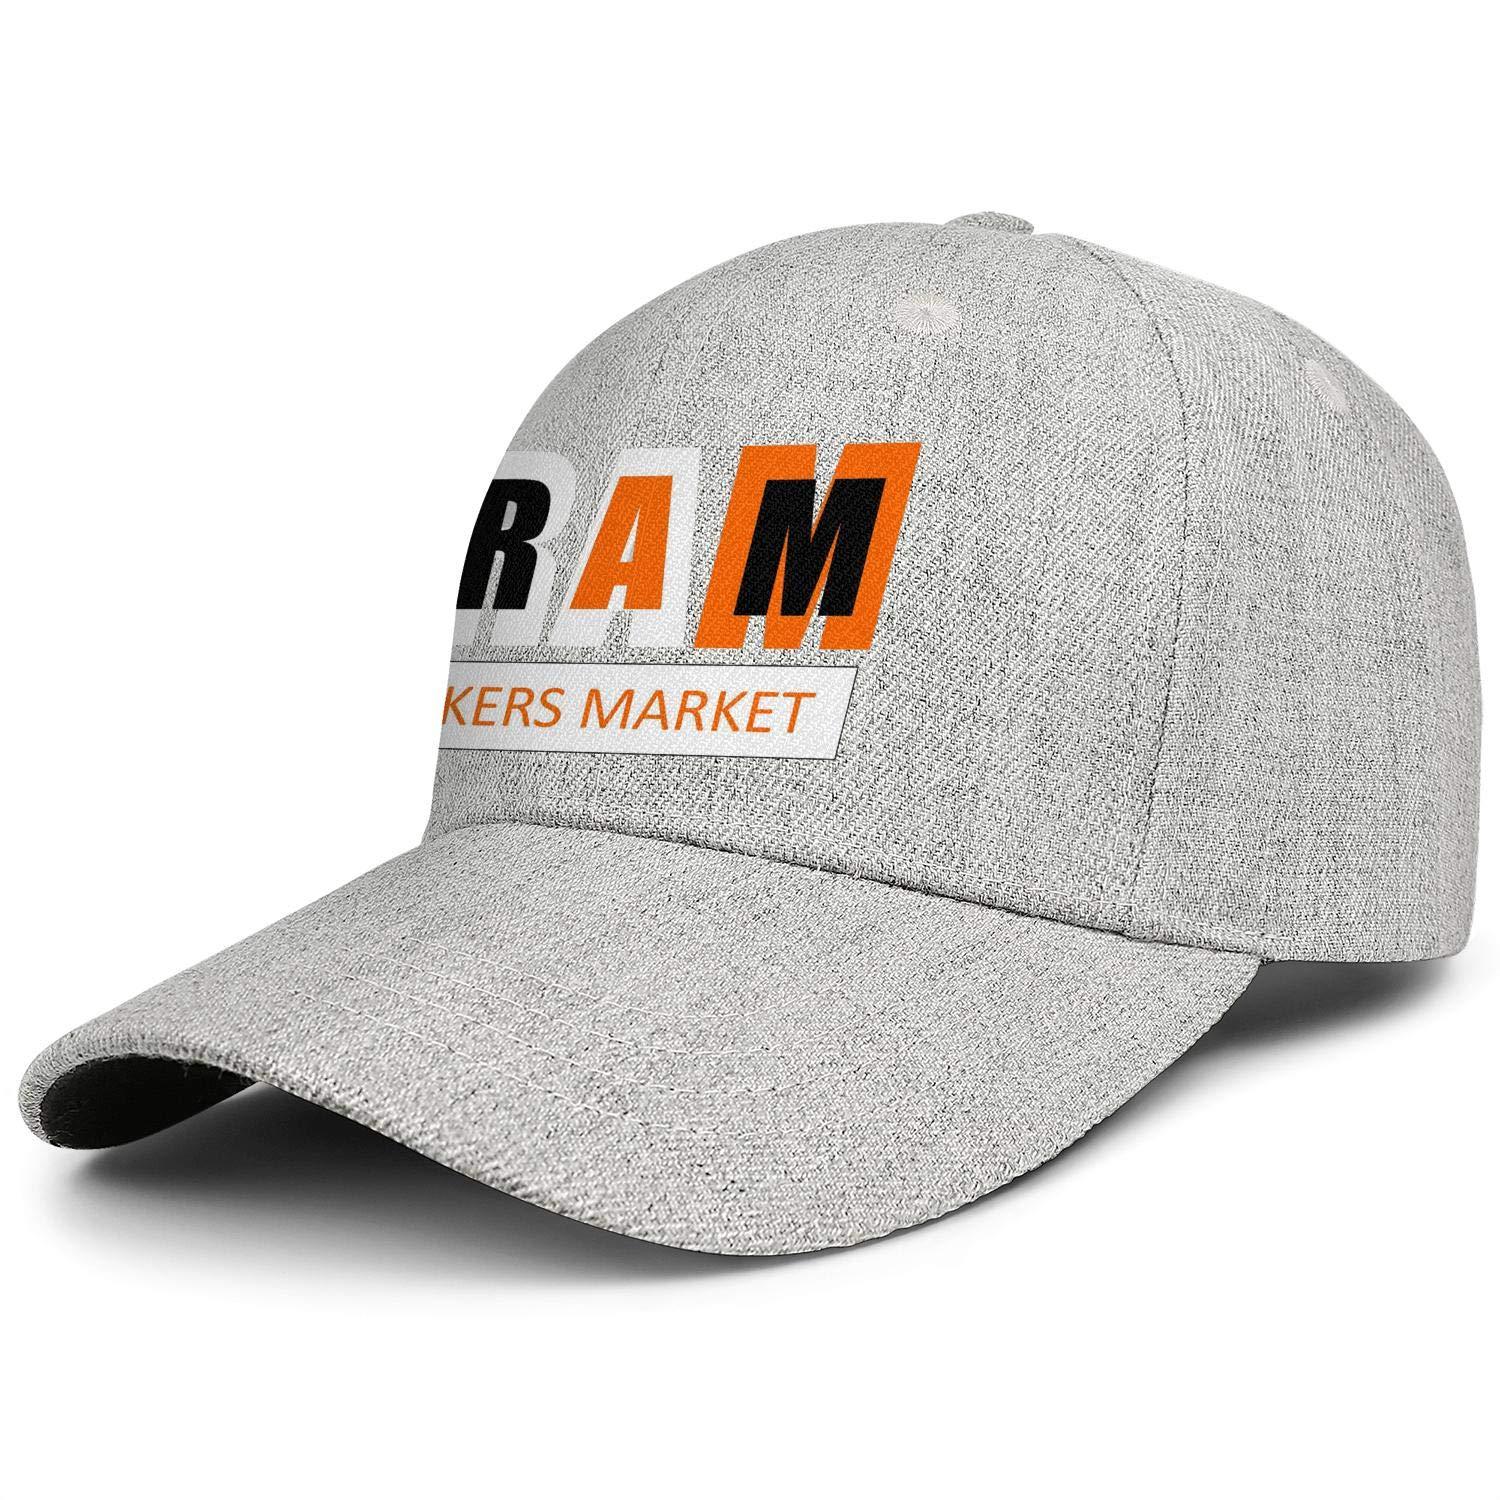 FRAM-AUTO-Filters Adjustable Wool Blend Ball Caps for Men Womens One Size Summer Hats